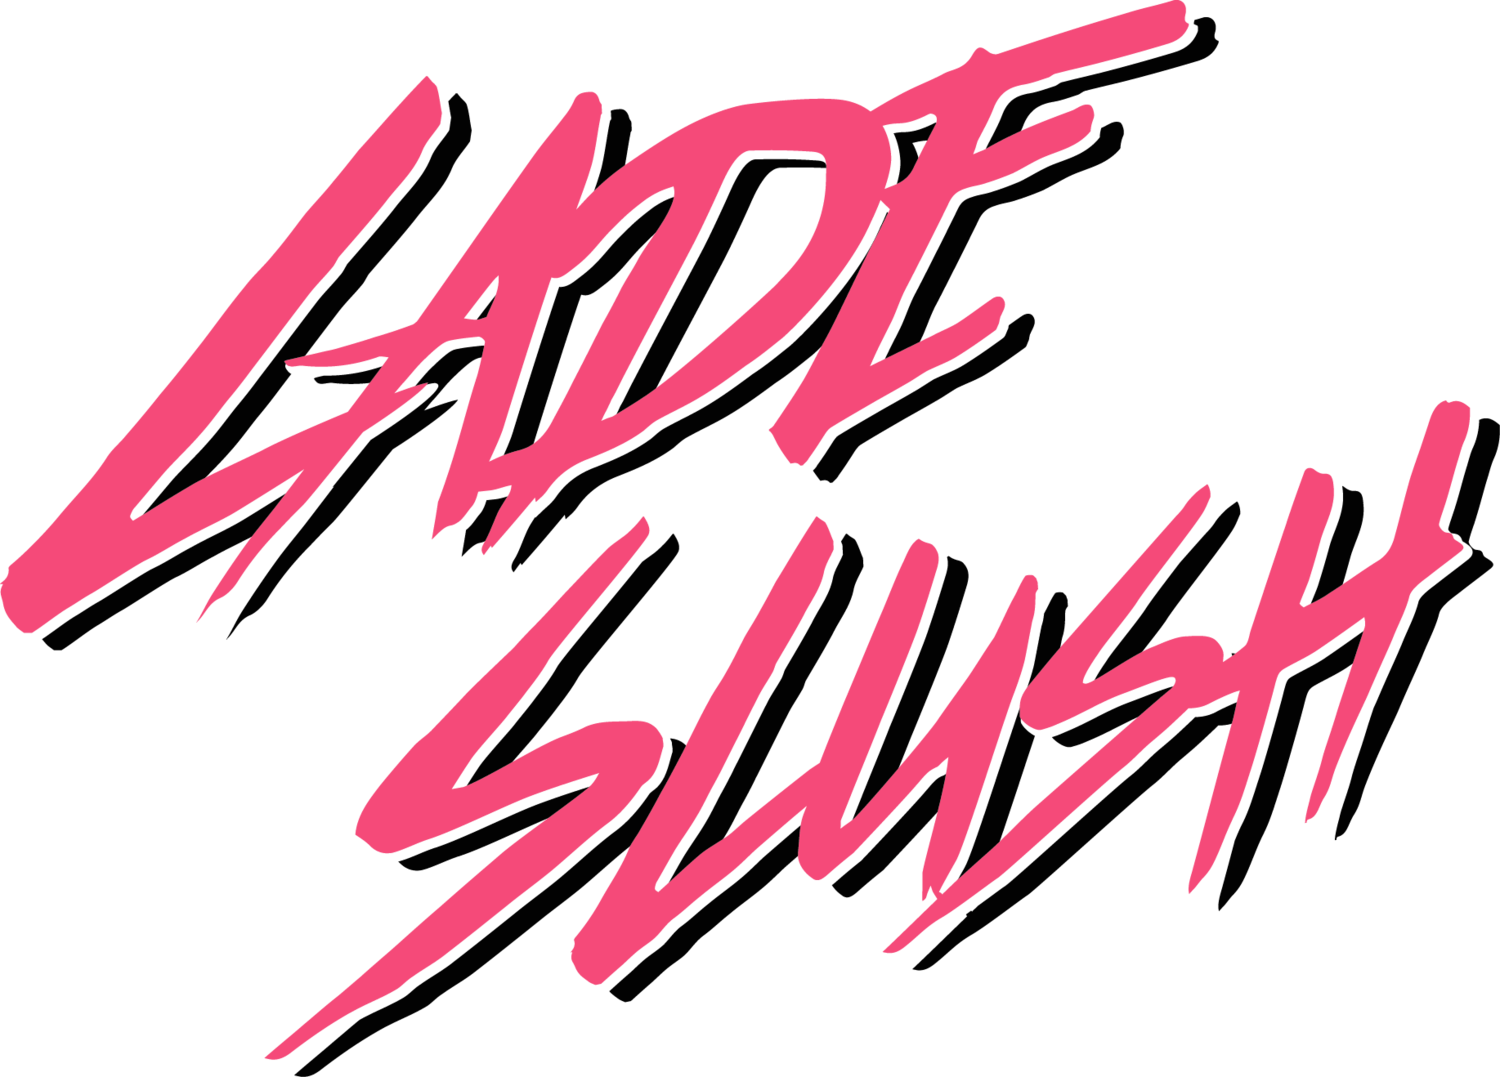 Lade Slush Co.